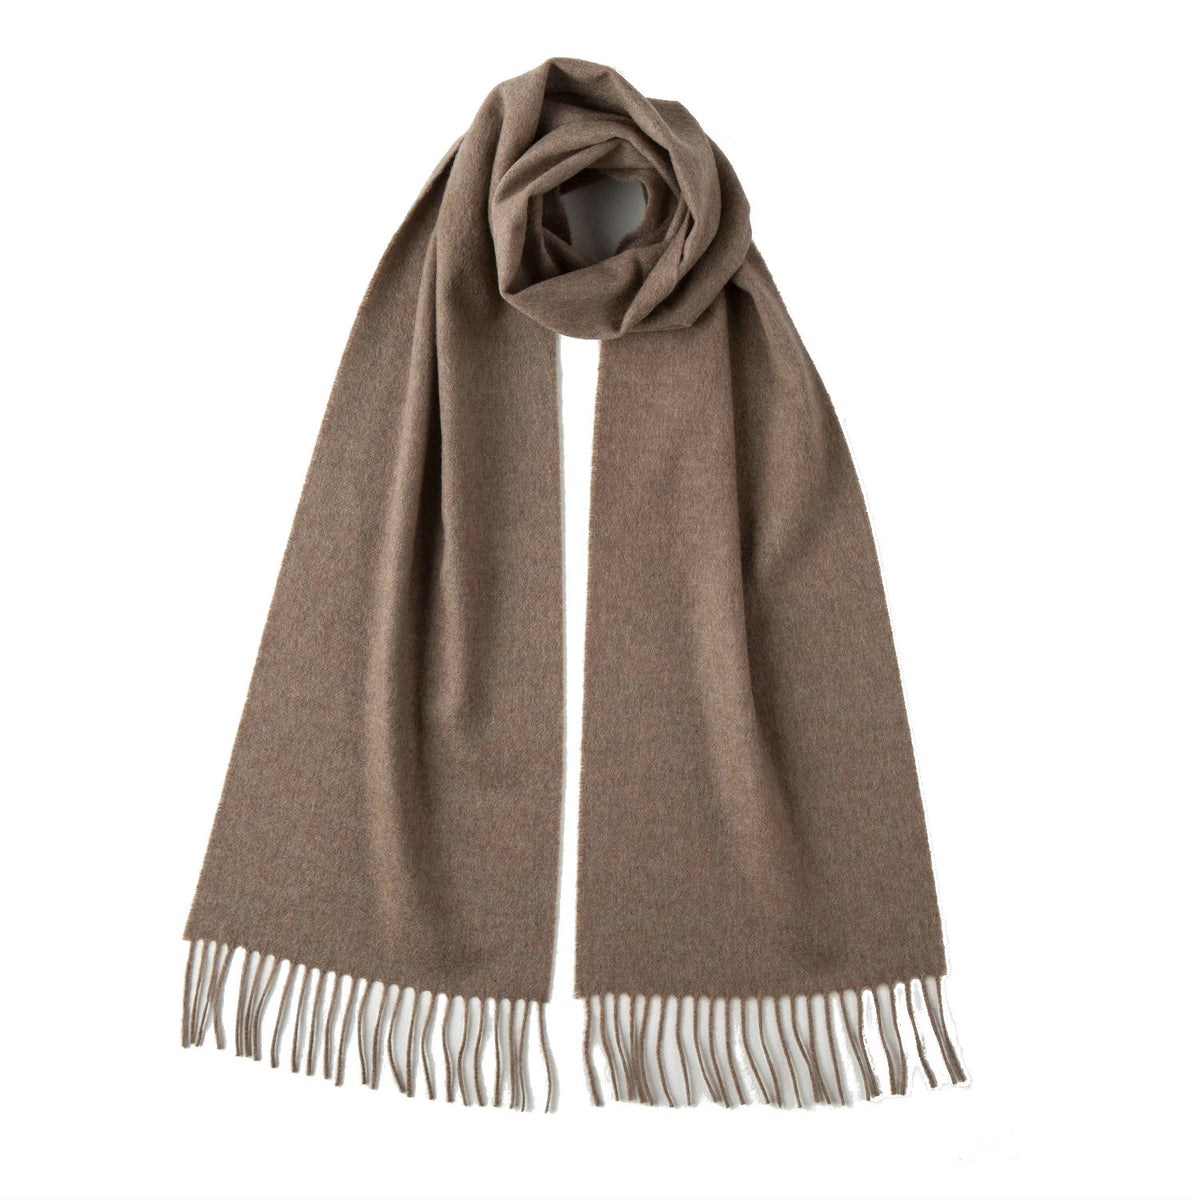 Johnsons of Elgin | Johnston Cashmere | Otter Beige Cashmere Scarf | buy at The Cashmere Choice | London